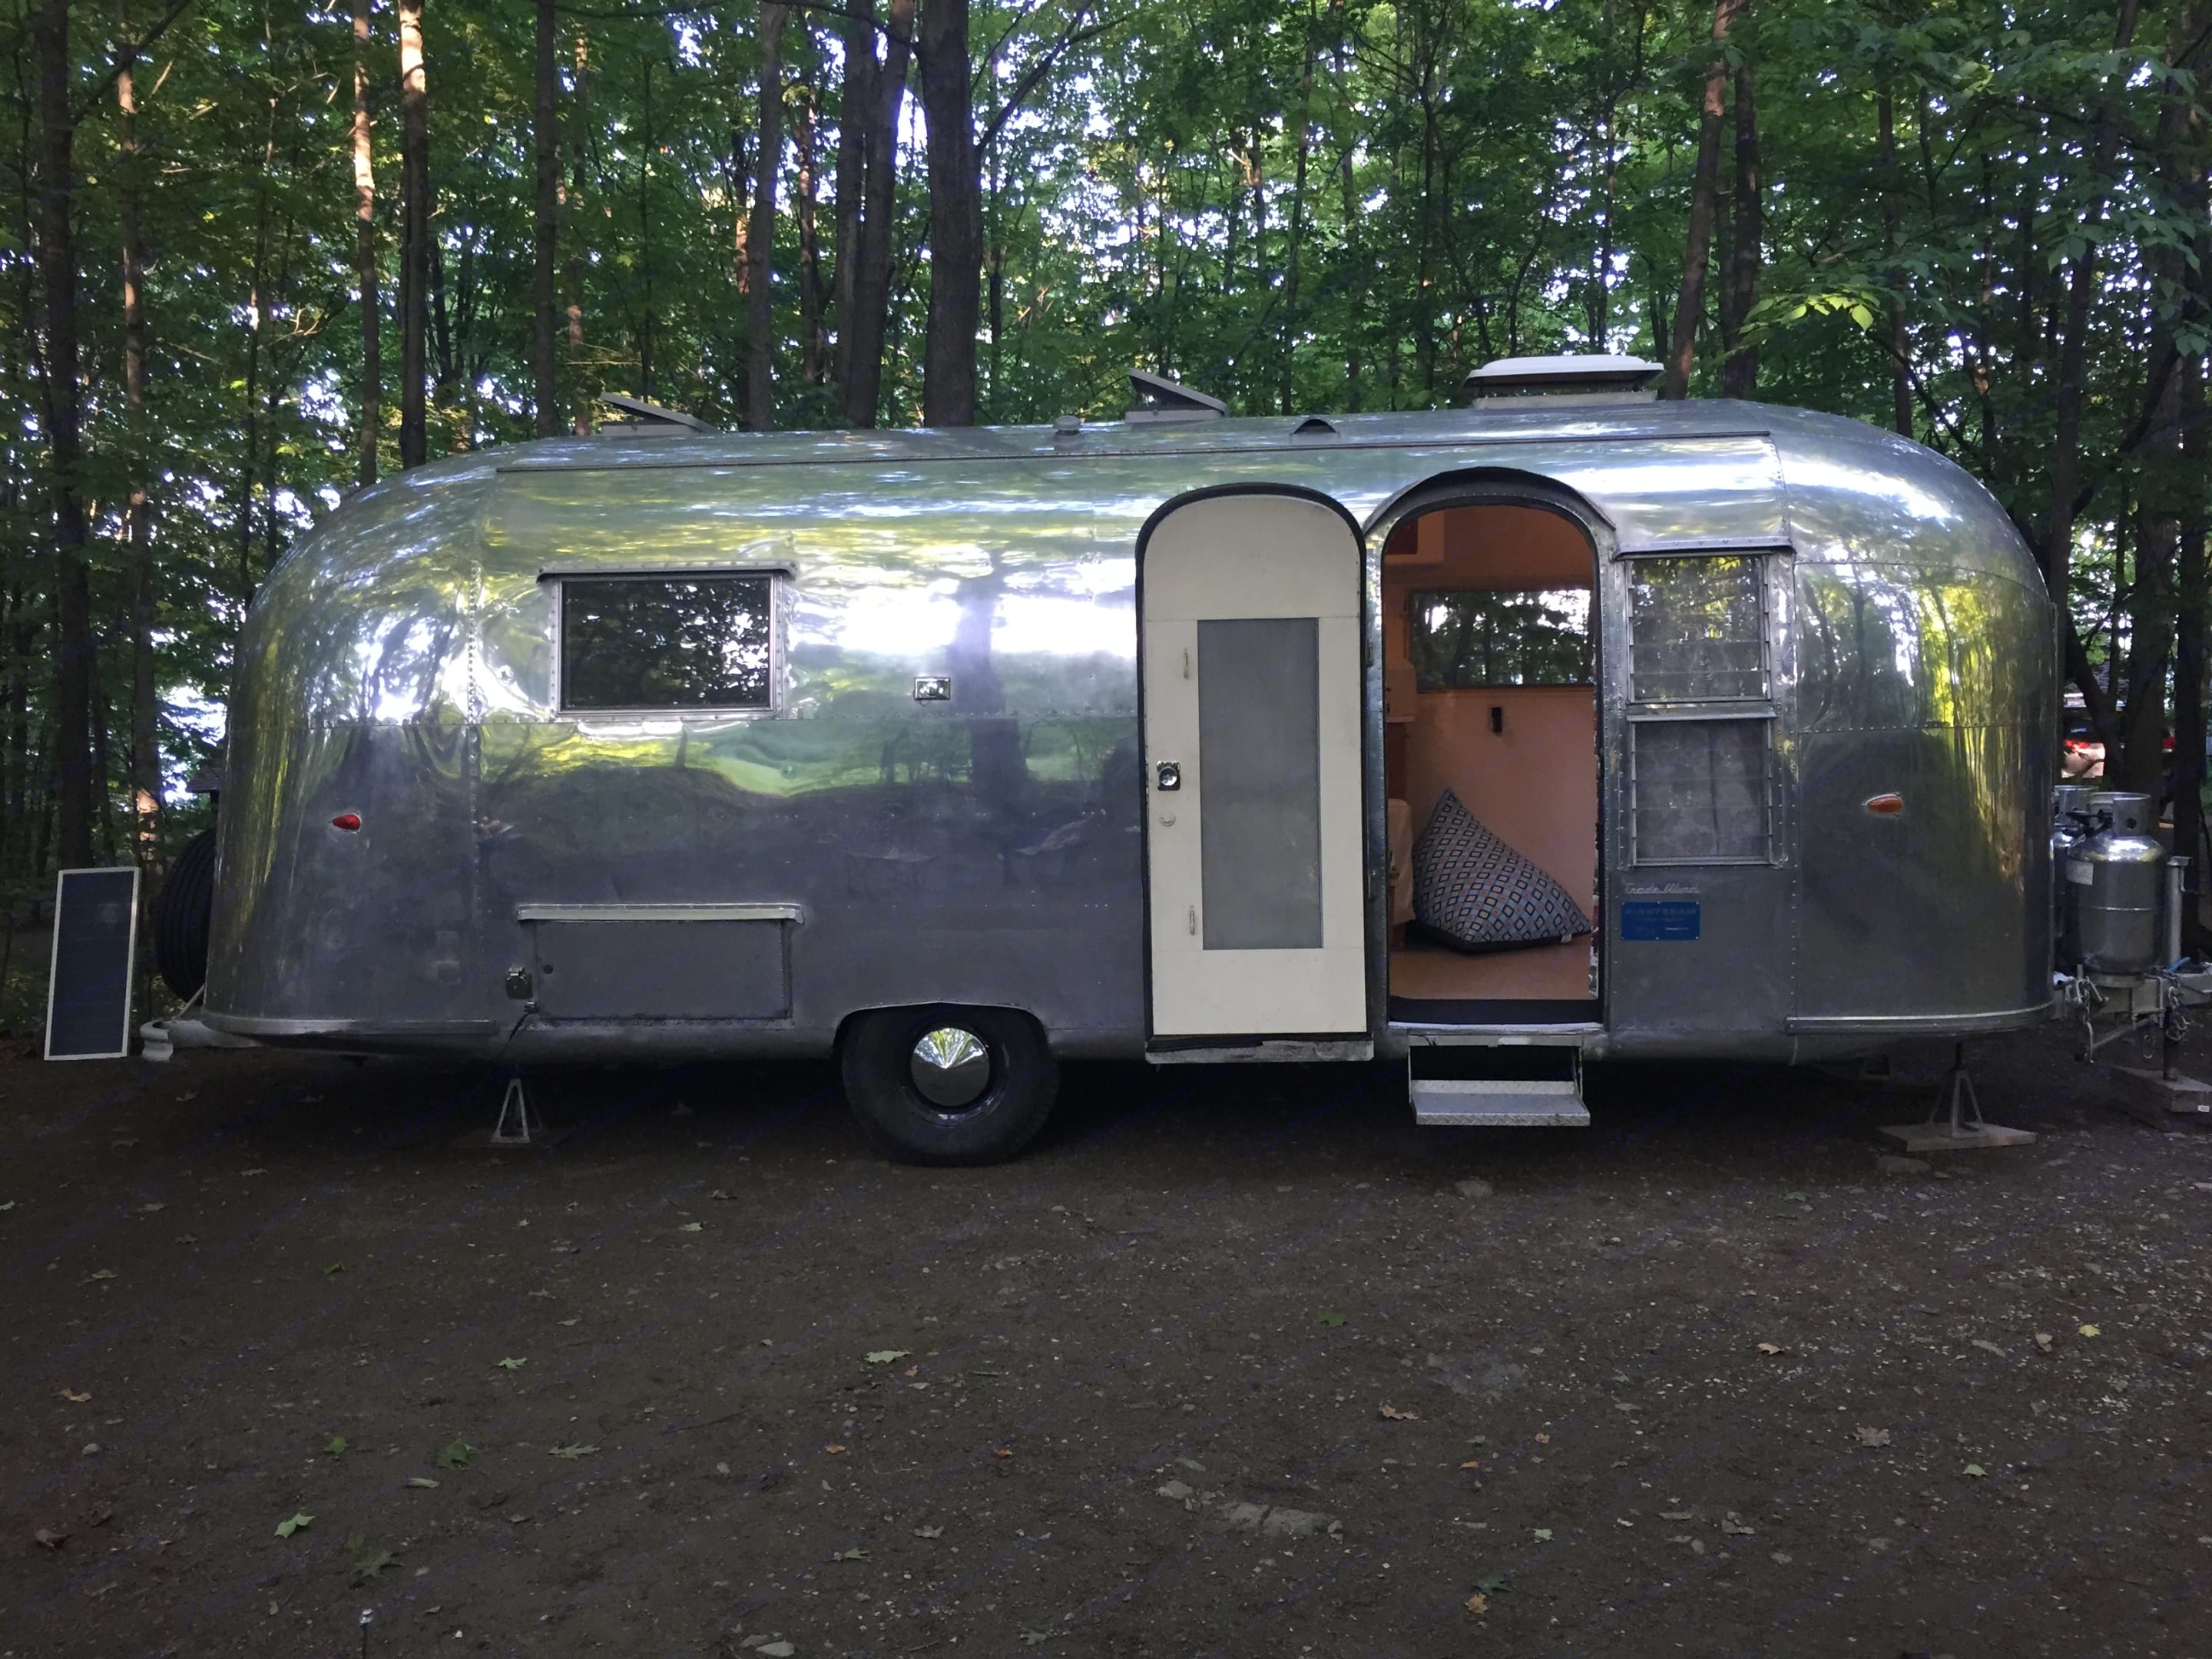 Dry camping (no hookups) at Grand Isle, Vermont State Park. Airstream Tradewind Land Yacht 1961